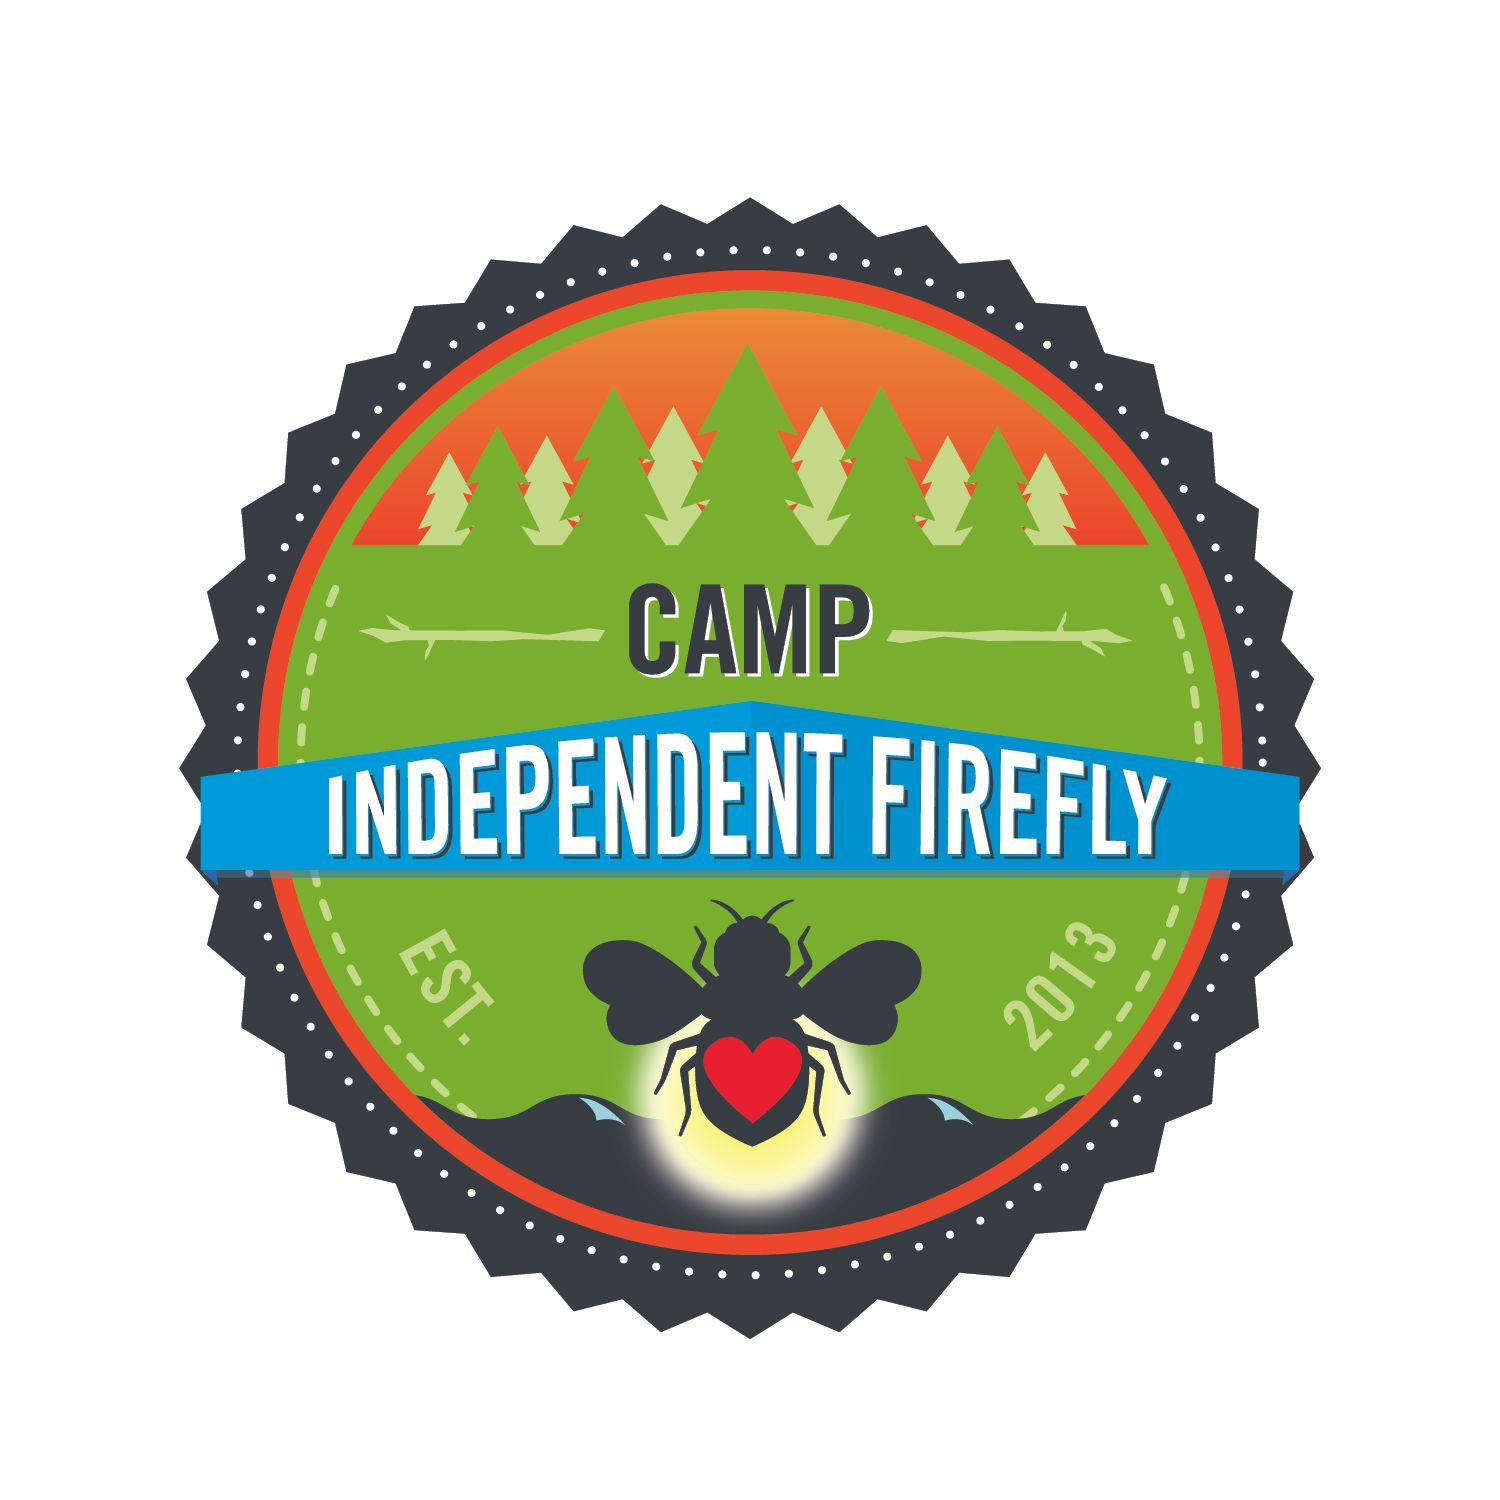 Camp Independent Firefly